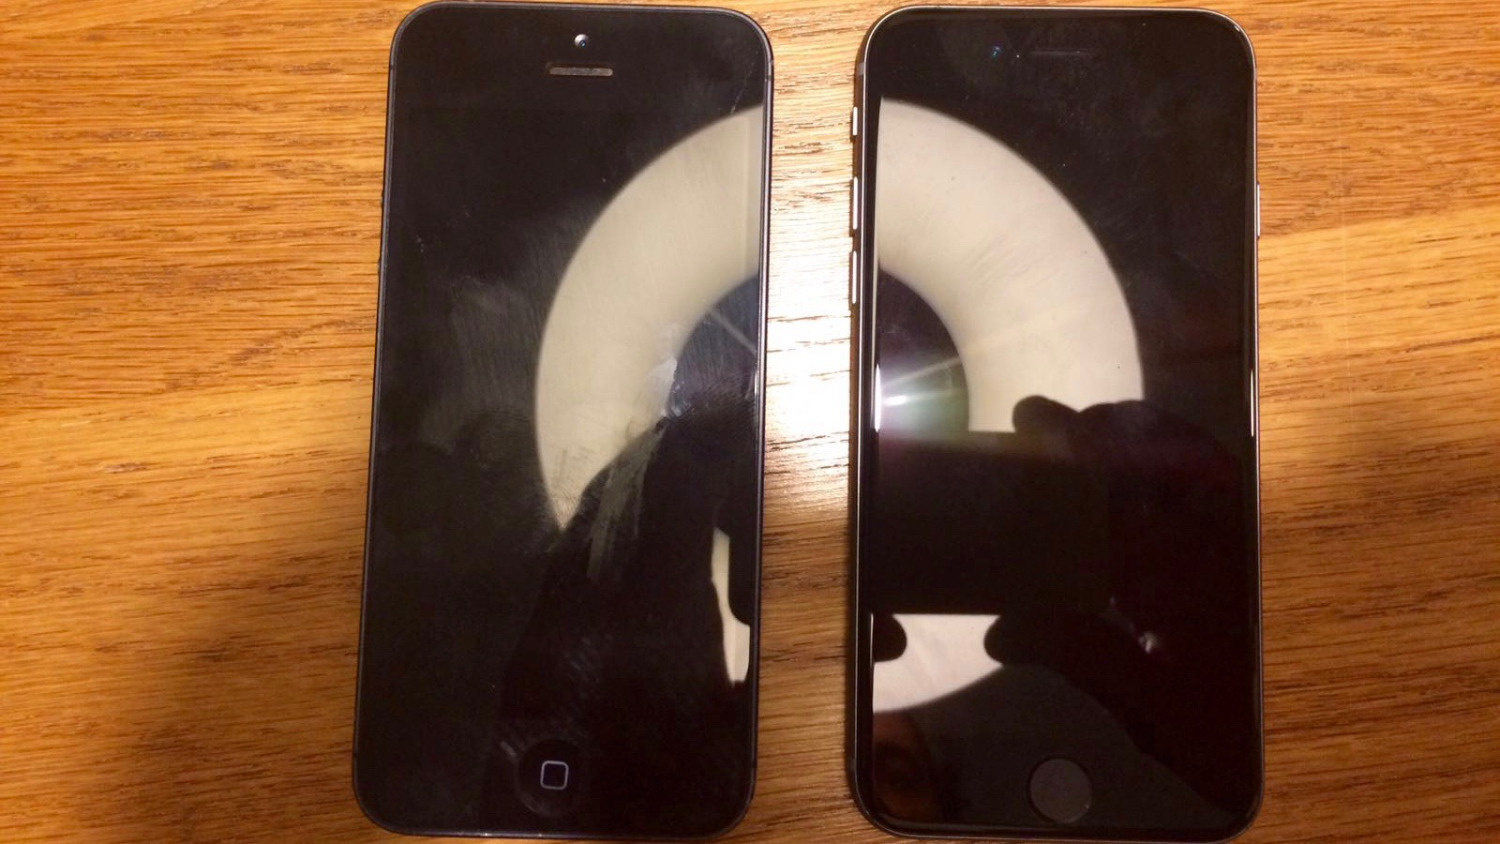 iPhone 5 vs iPhone 5se